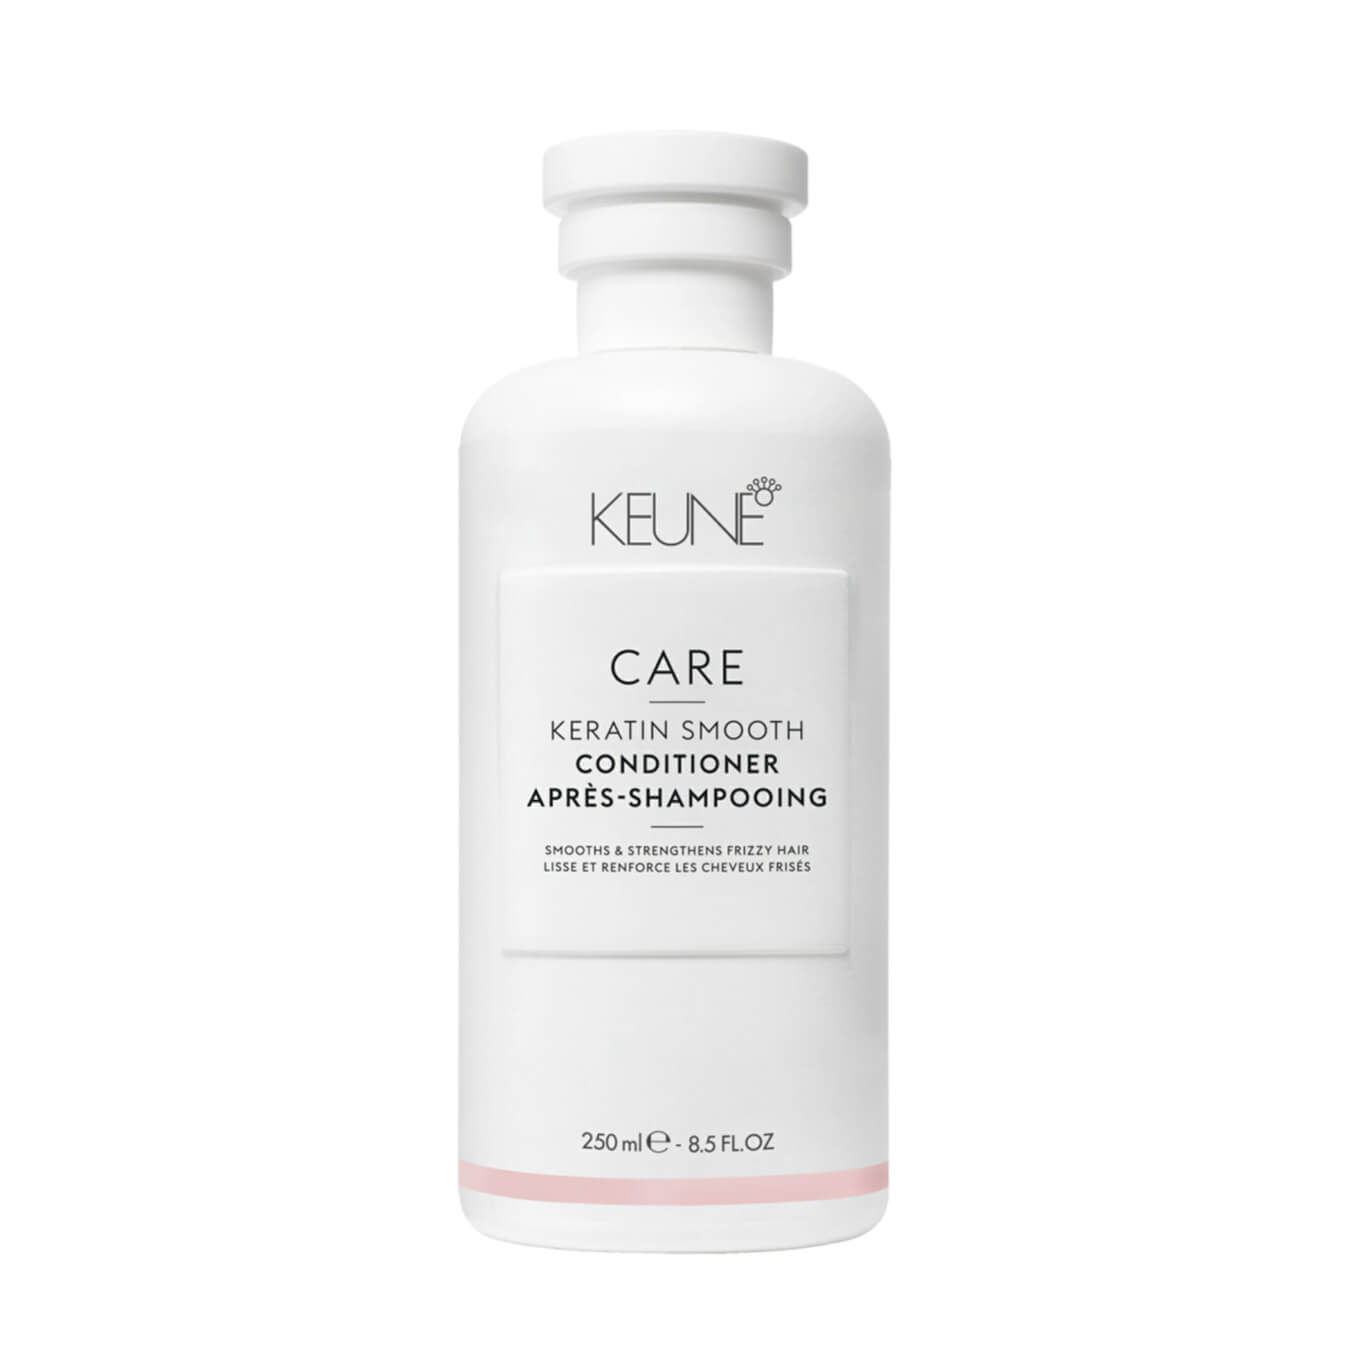 Koop Keune Care Keratin Smooth Conditioner 250ml